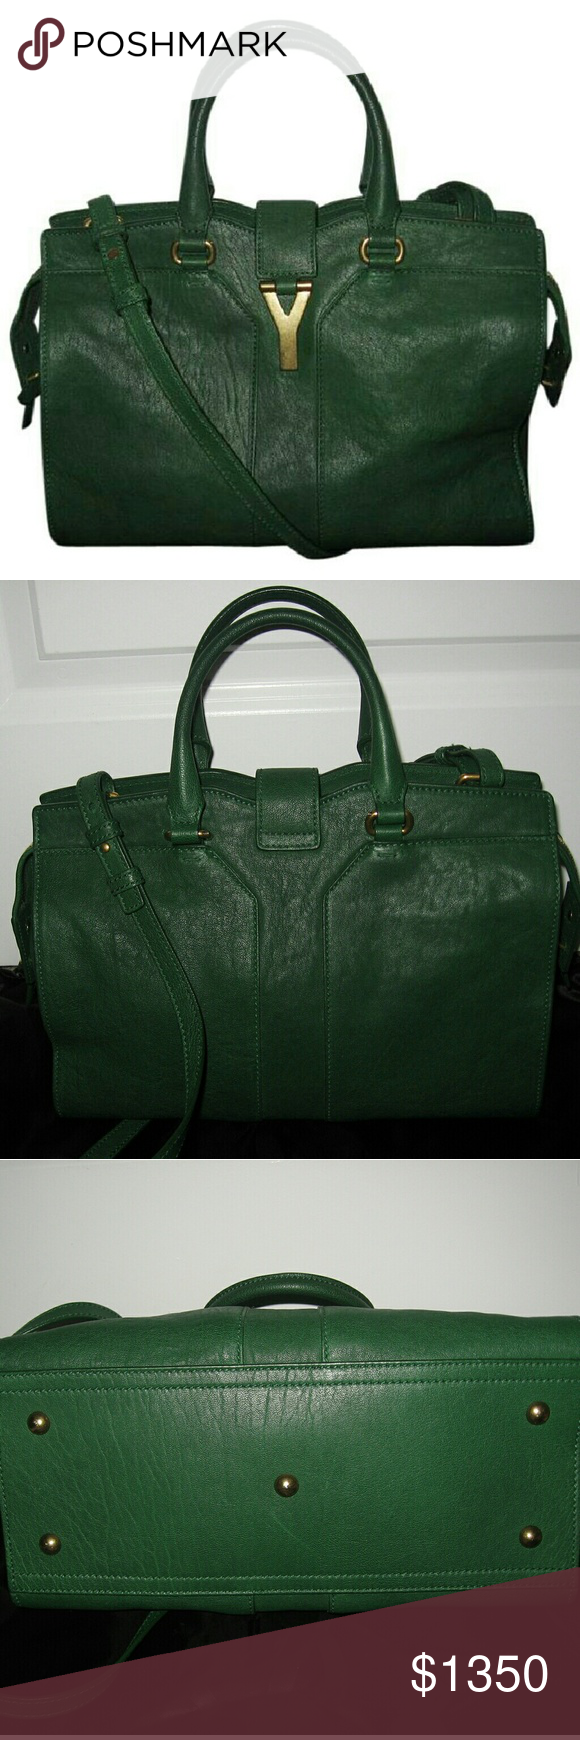 0ae4e2eaaa6e Yves Saint Laurent Small Cabas Chyc Y-linge Bag Gorgeous Authentic YSL small  Cabas Chyc bag in excellent condition. Made of sheepskin. Color Tartan  Green.